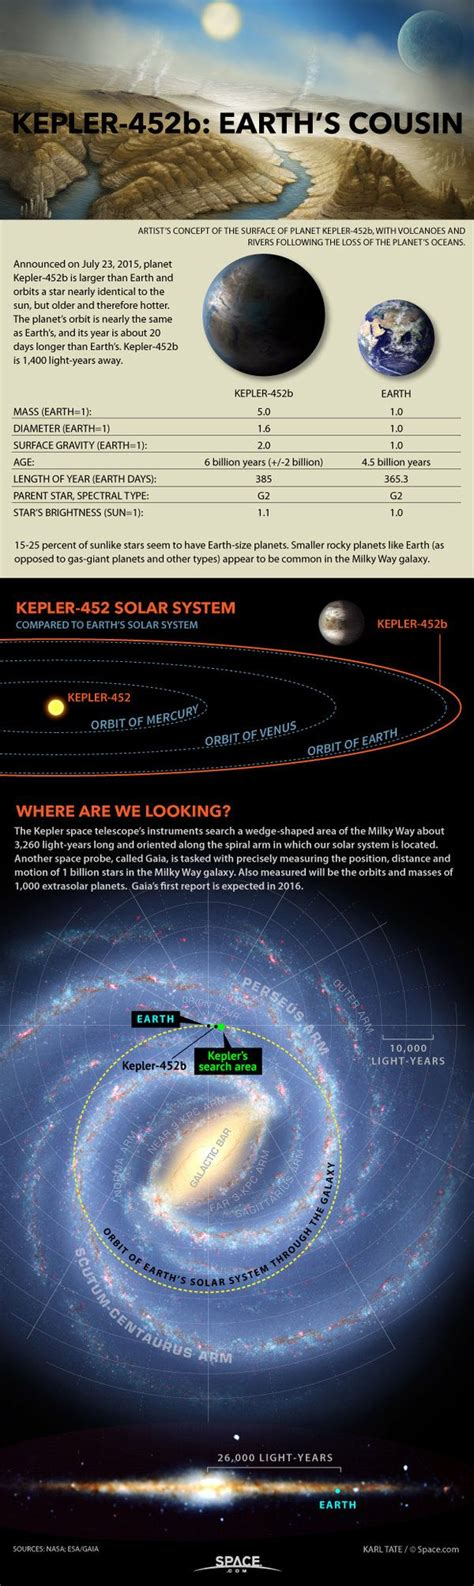 Earth's Cousin Found: All About Exoplanet Kepler-452b